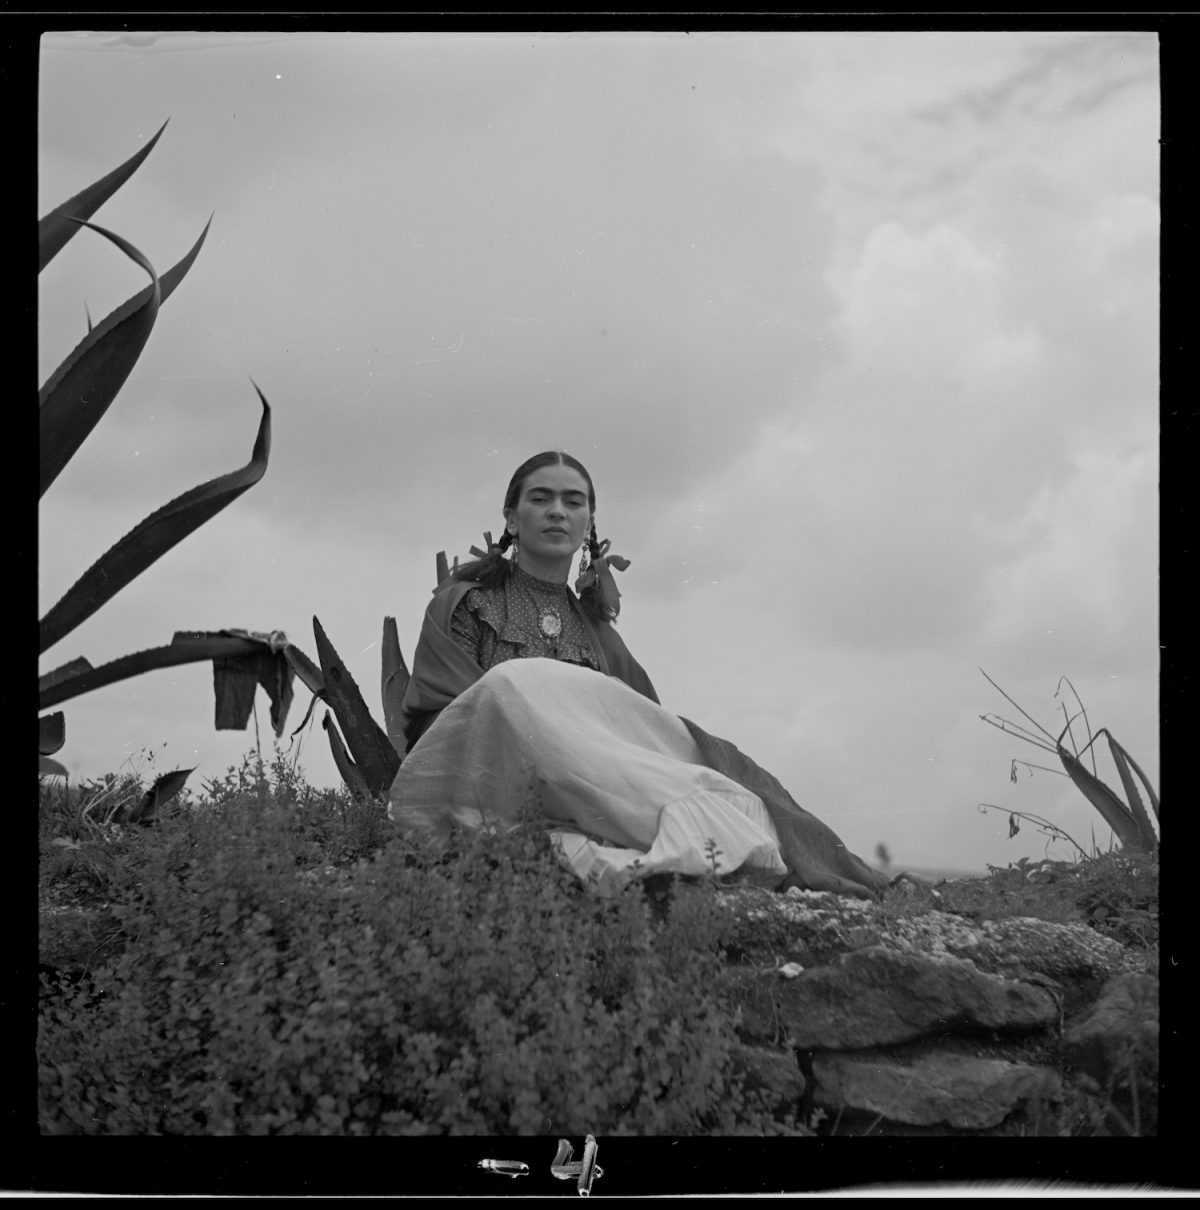 Toni Frissell, Frida Kahlo, photography